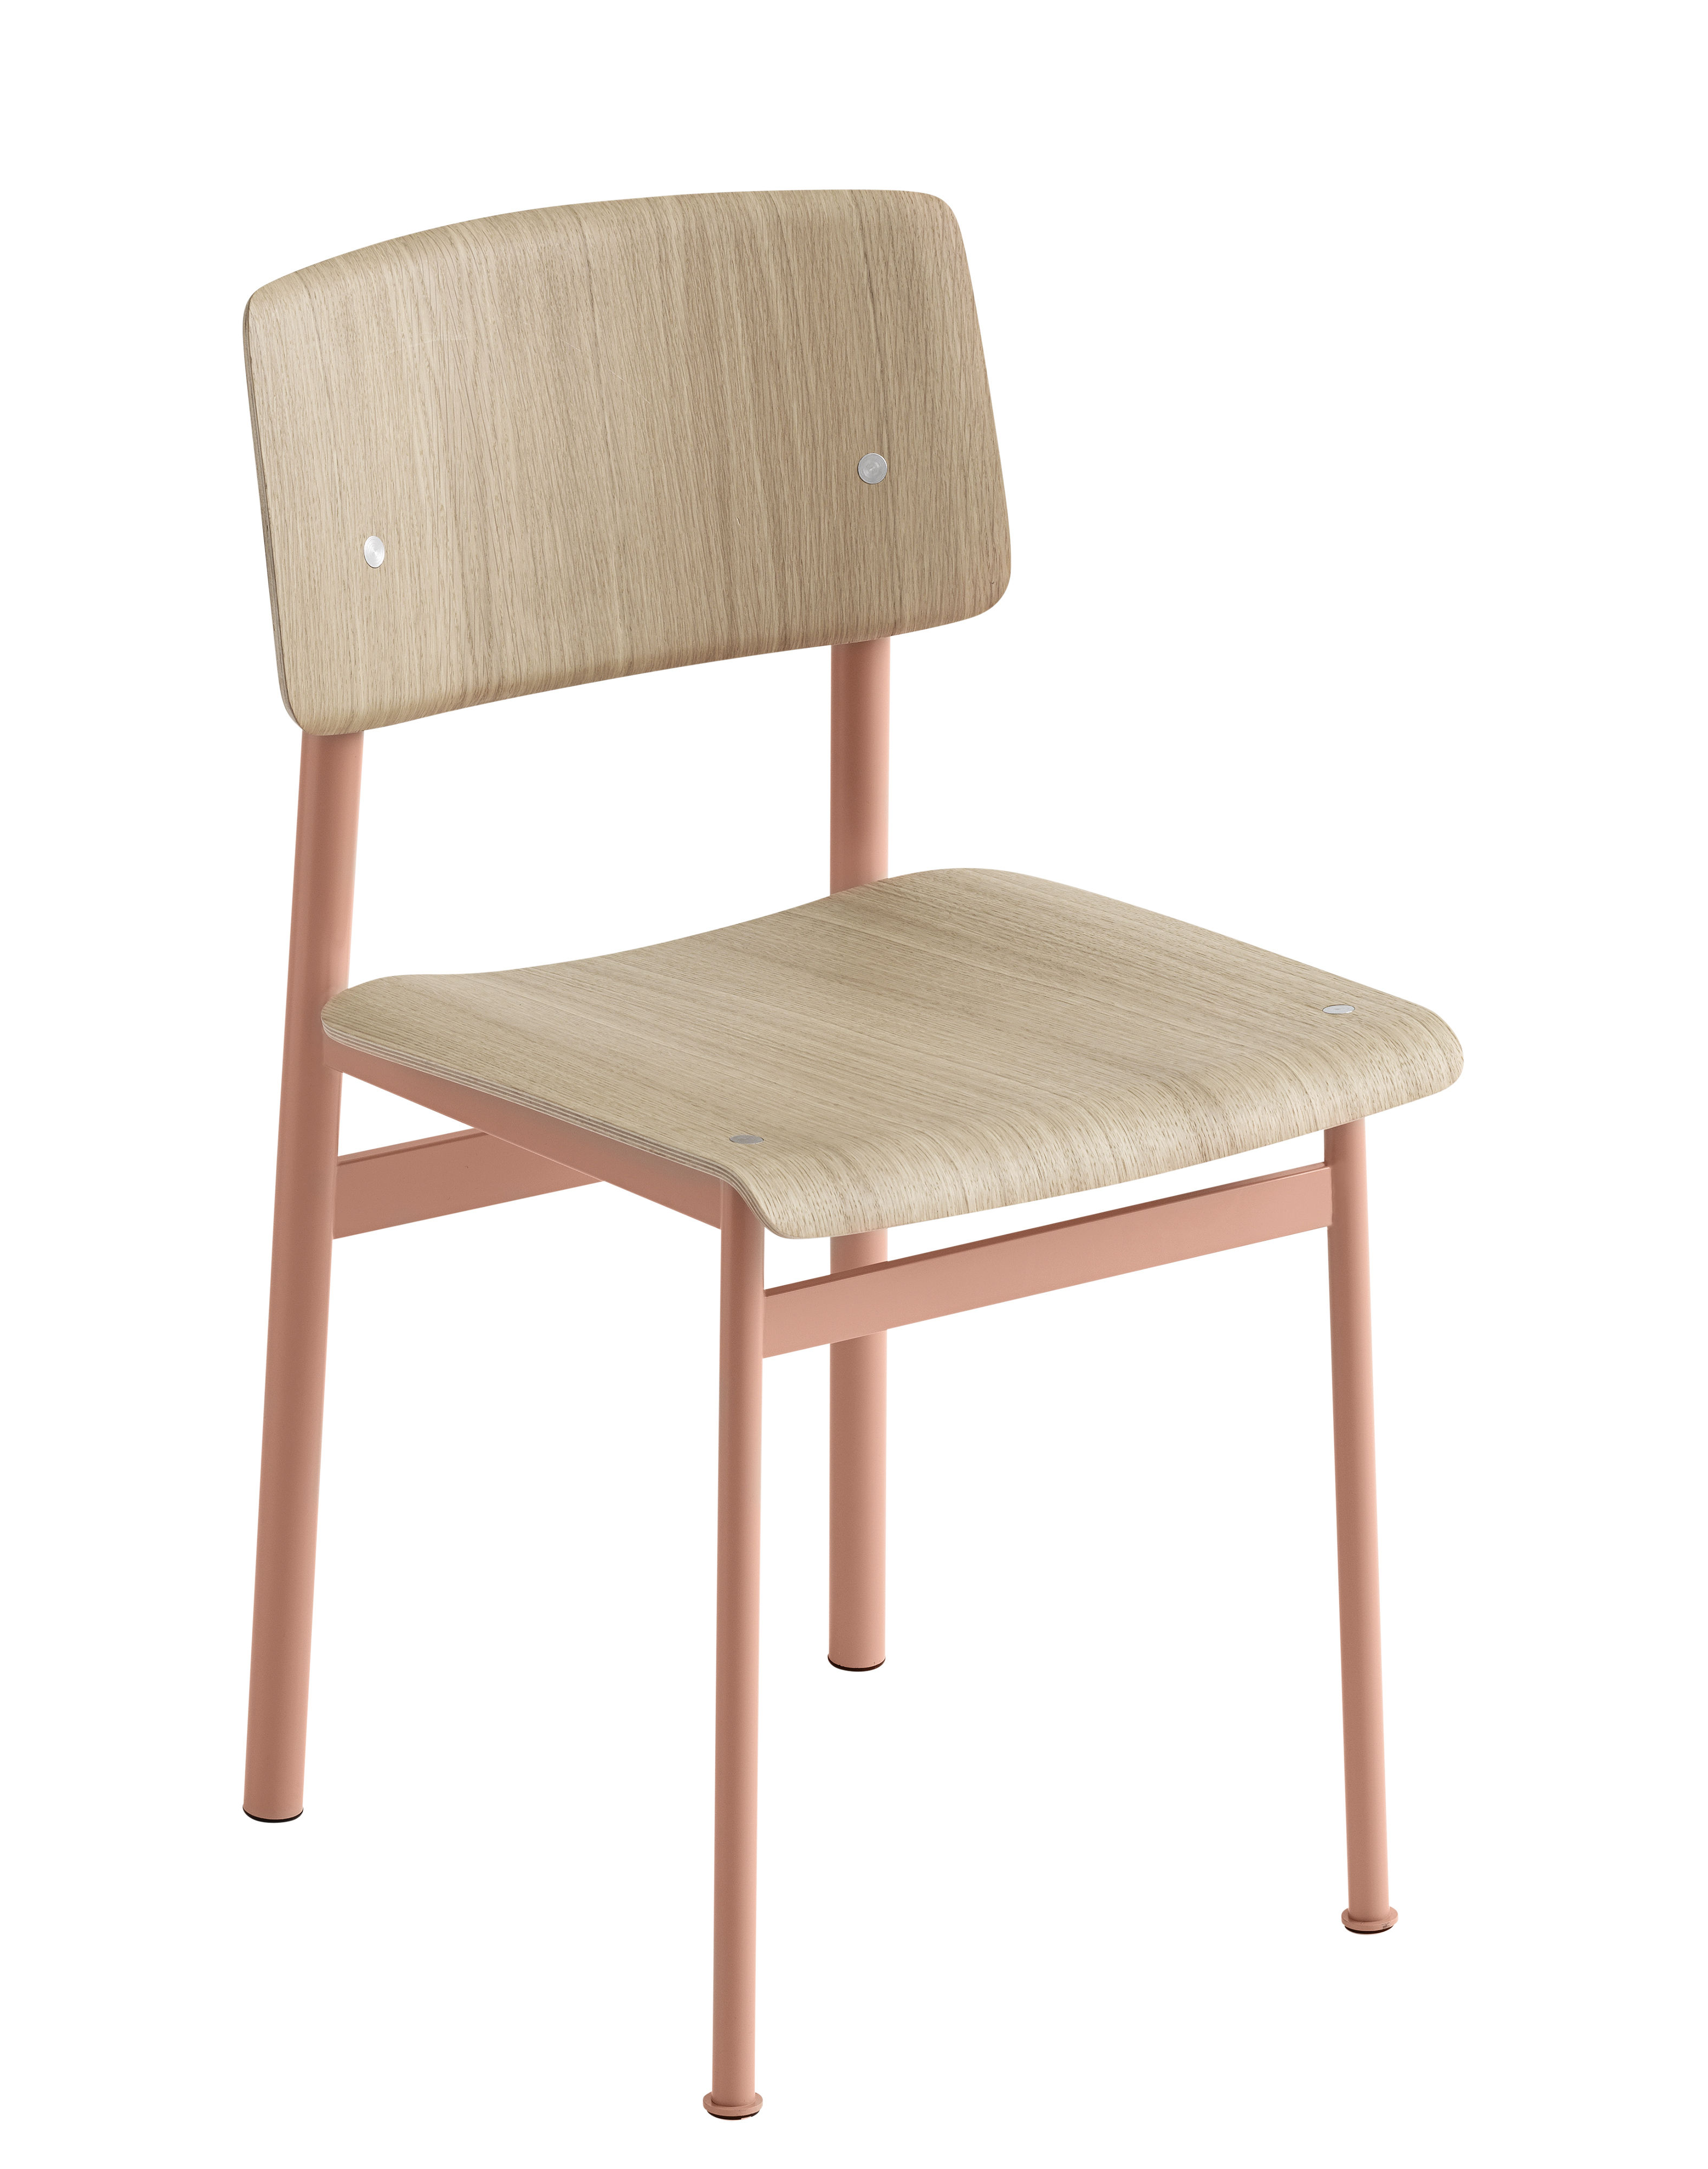 Furniture - Chairs - Loft Chair - / Wood & metal by Muuto - Powder pink / Oak - Epoxy lacquered steel, Oak plywood